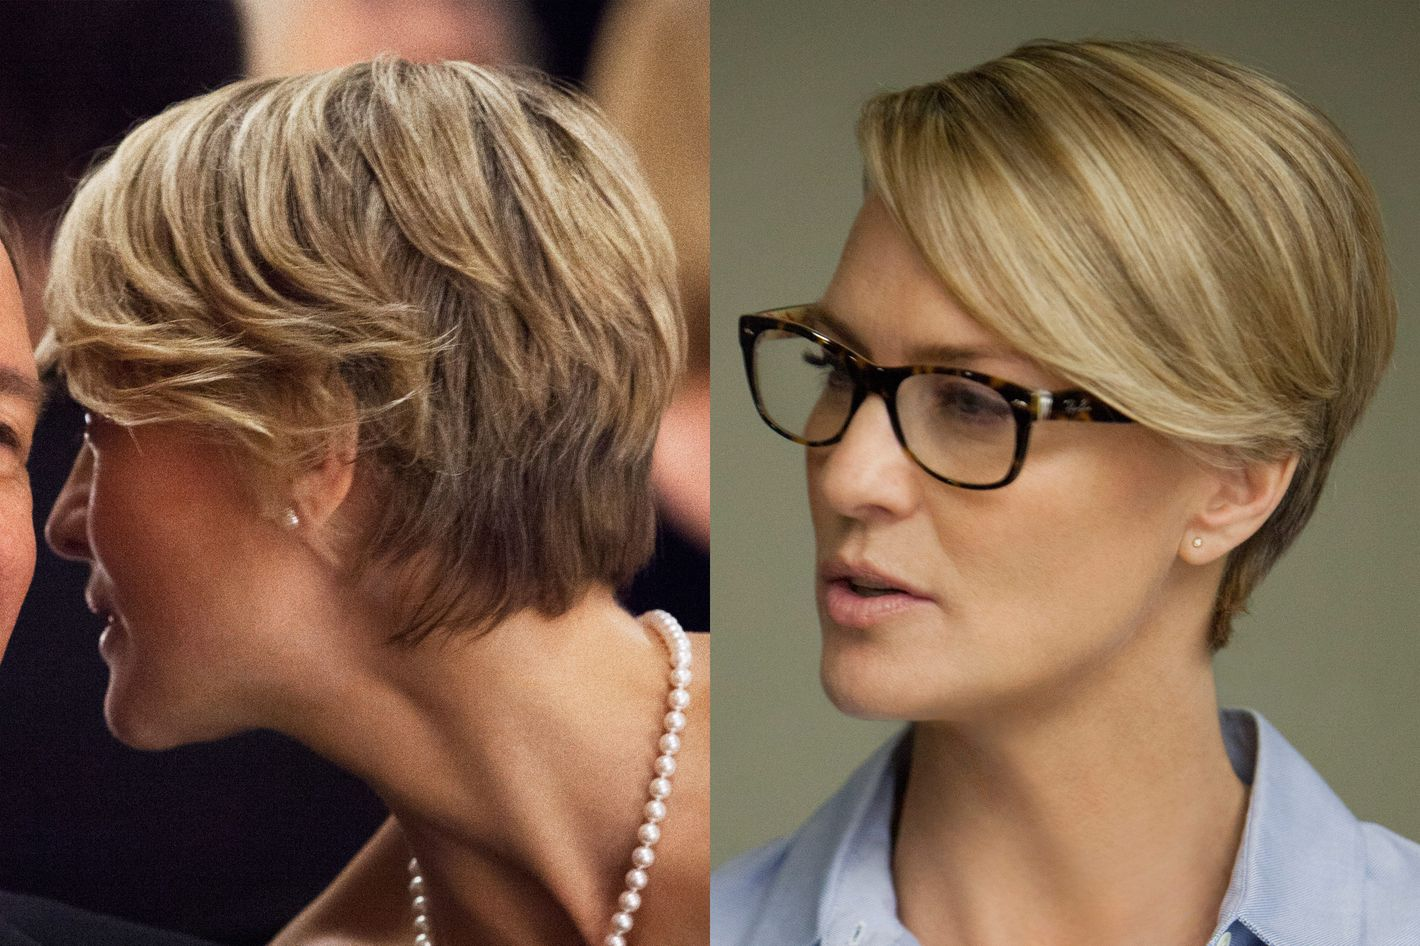 Best Haircut Robin Wright On House Of Cards